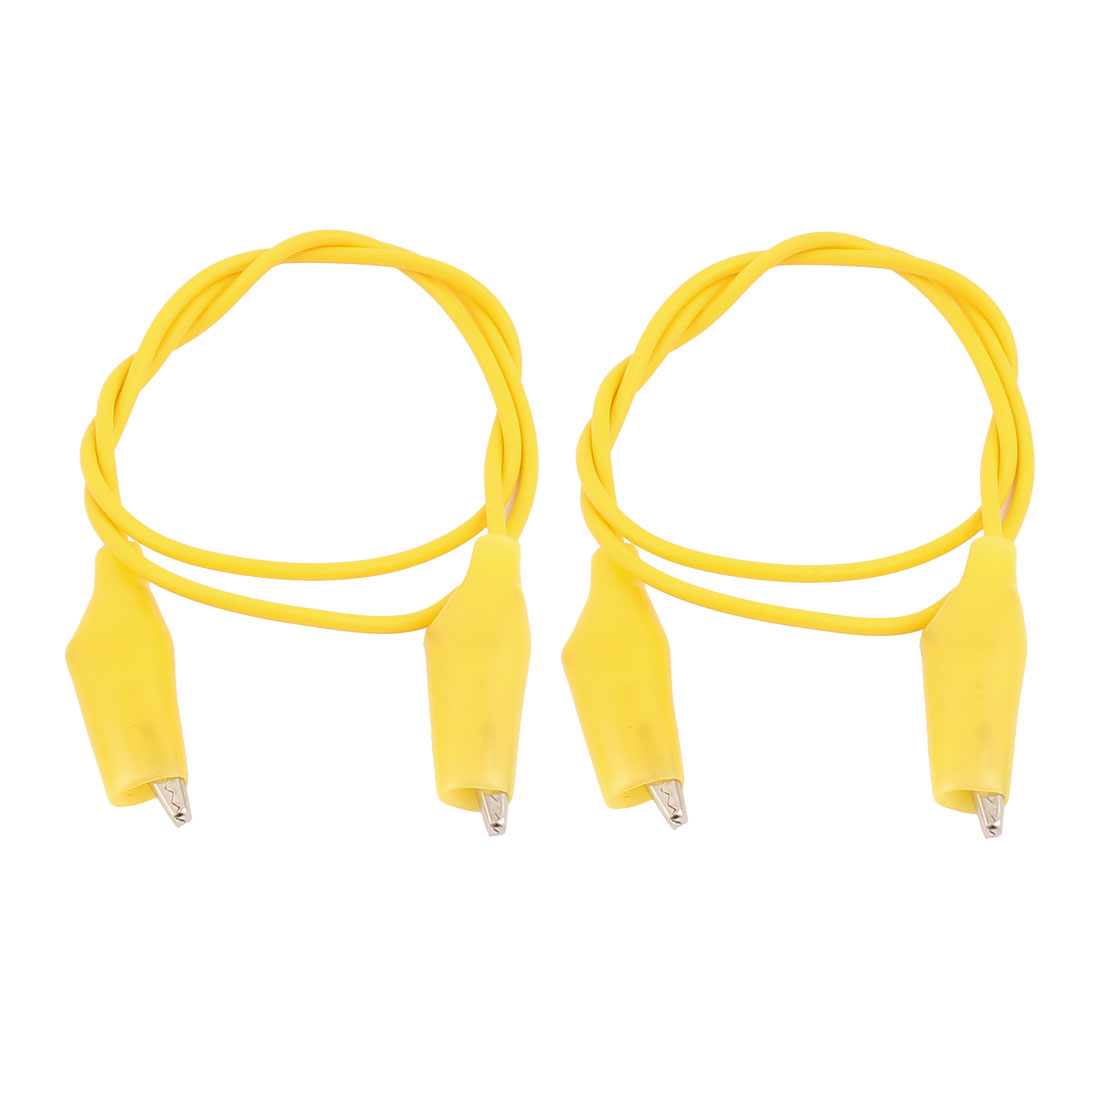 2pcs Yellow Double Ended Test Leads Alligator Clip Clamp Jumper Wire 47cm Long